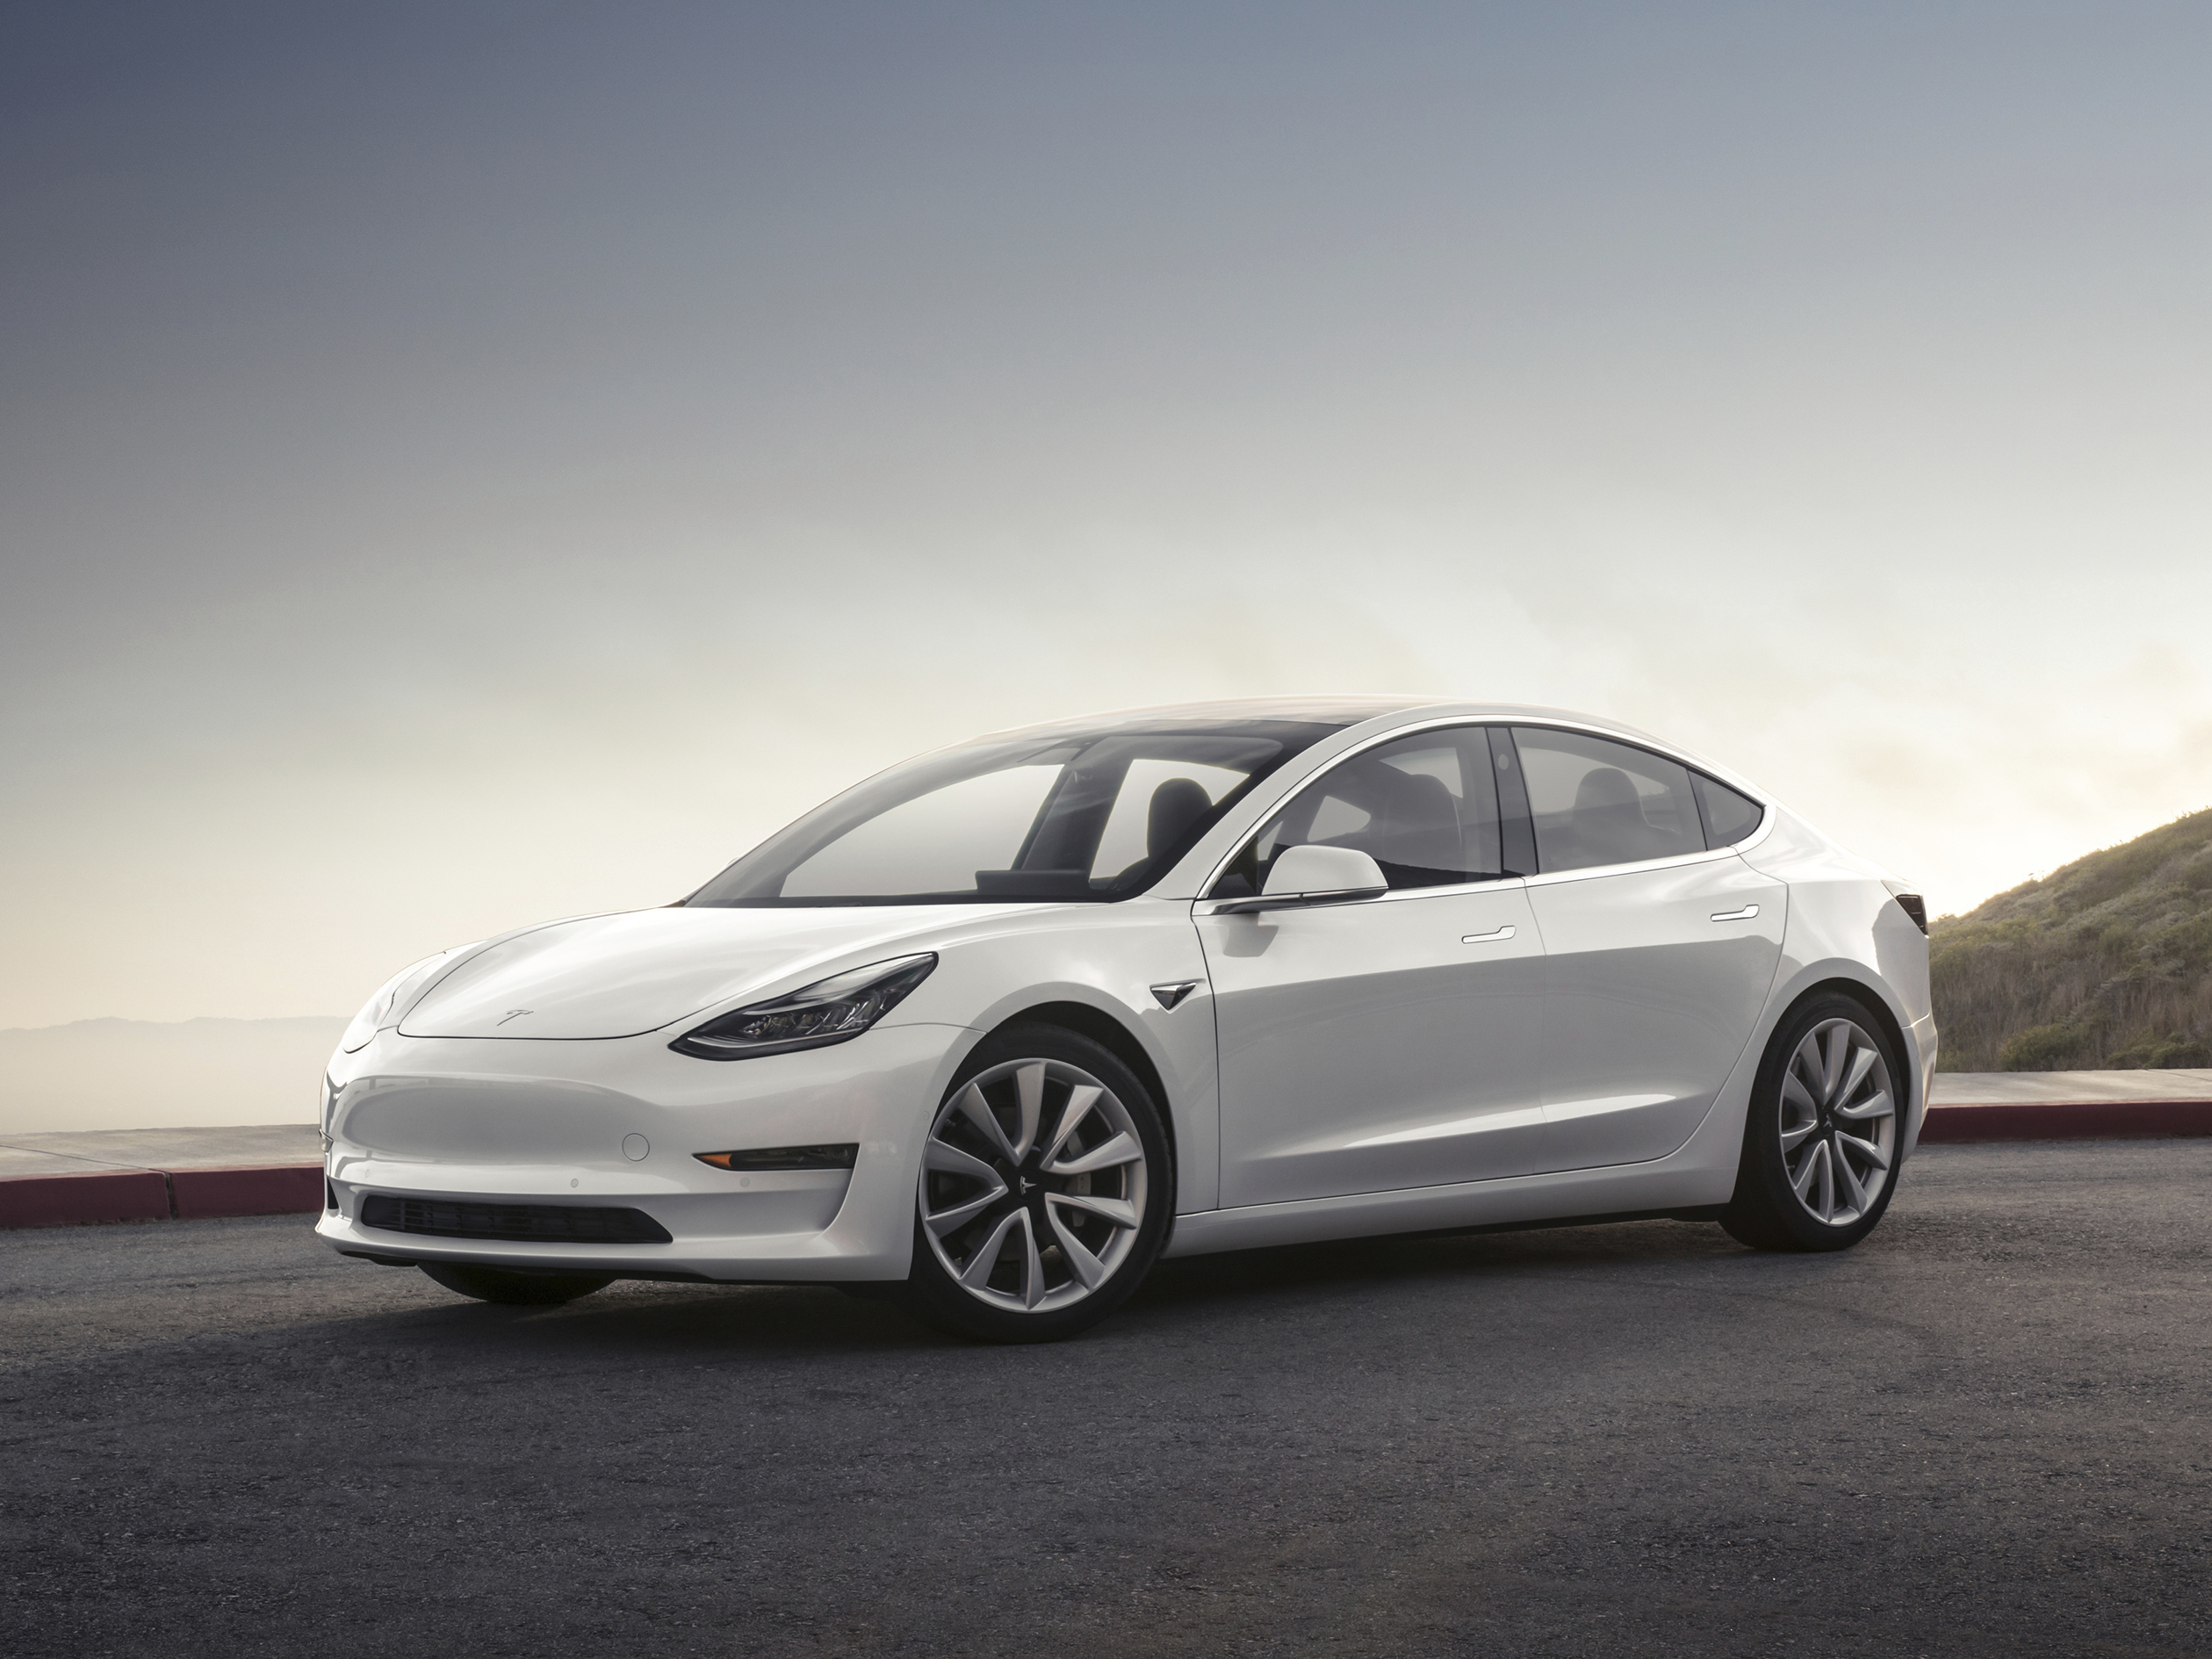 Tesla falters with Model 3 as initial output trails forecast